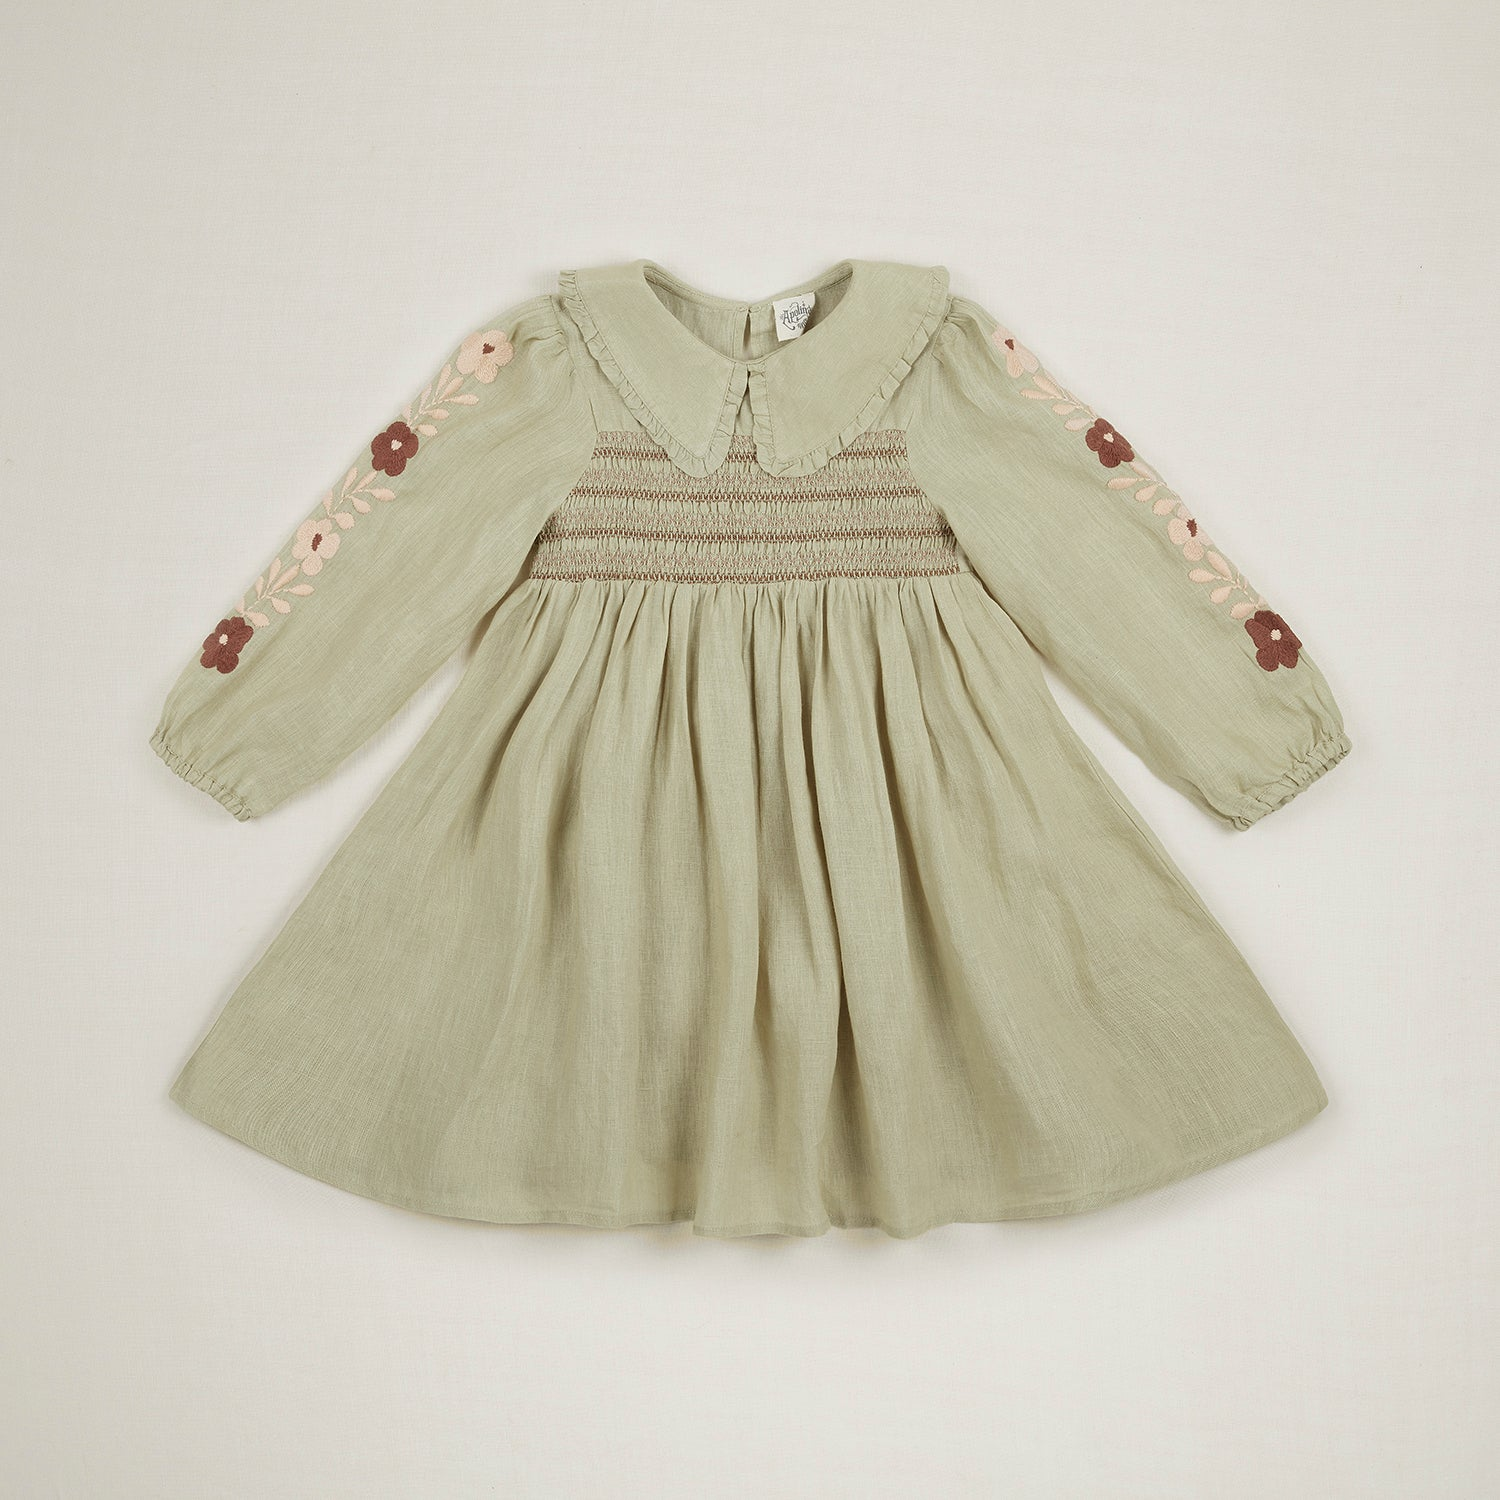 Apolina Nancy Collared Embroidery Kid's Dress Alpine Mint Pistachio Green Linen | BIEN BIEN www.bienbienshop.com